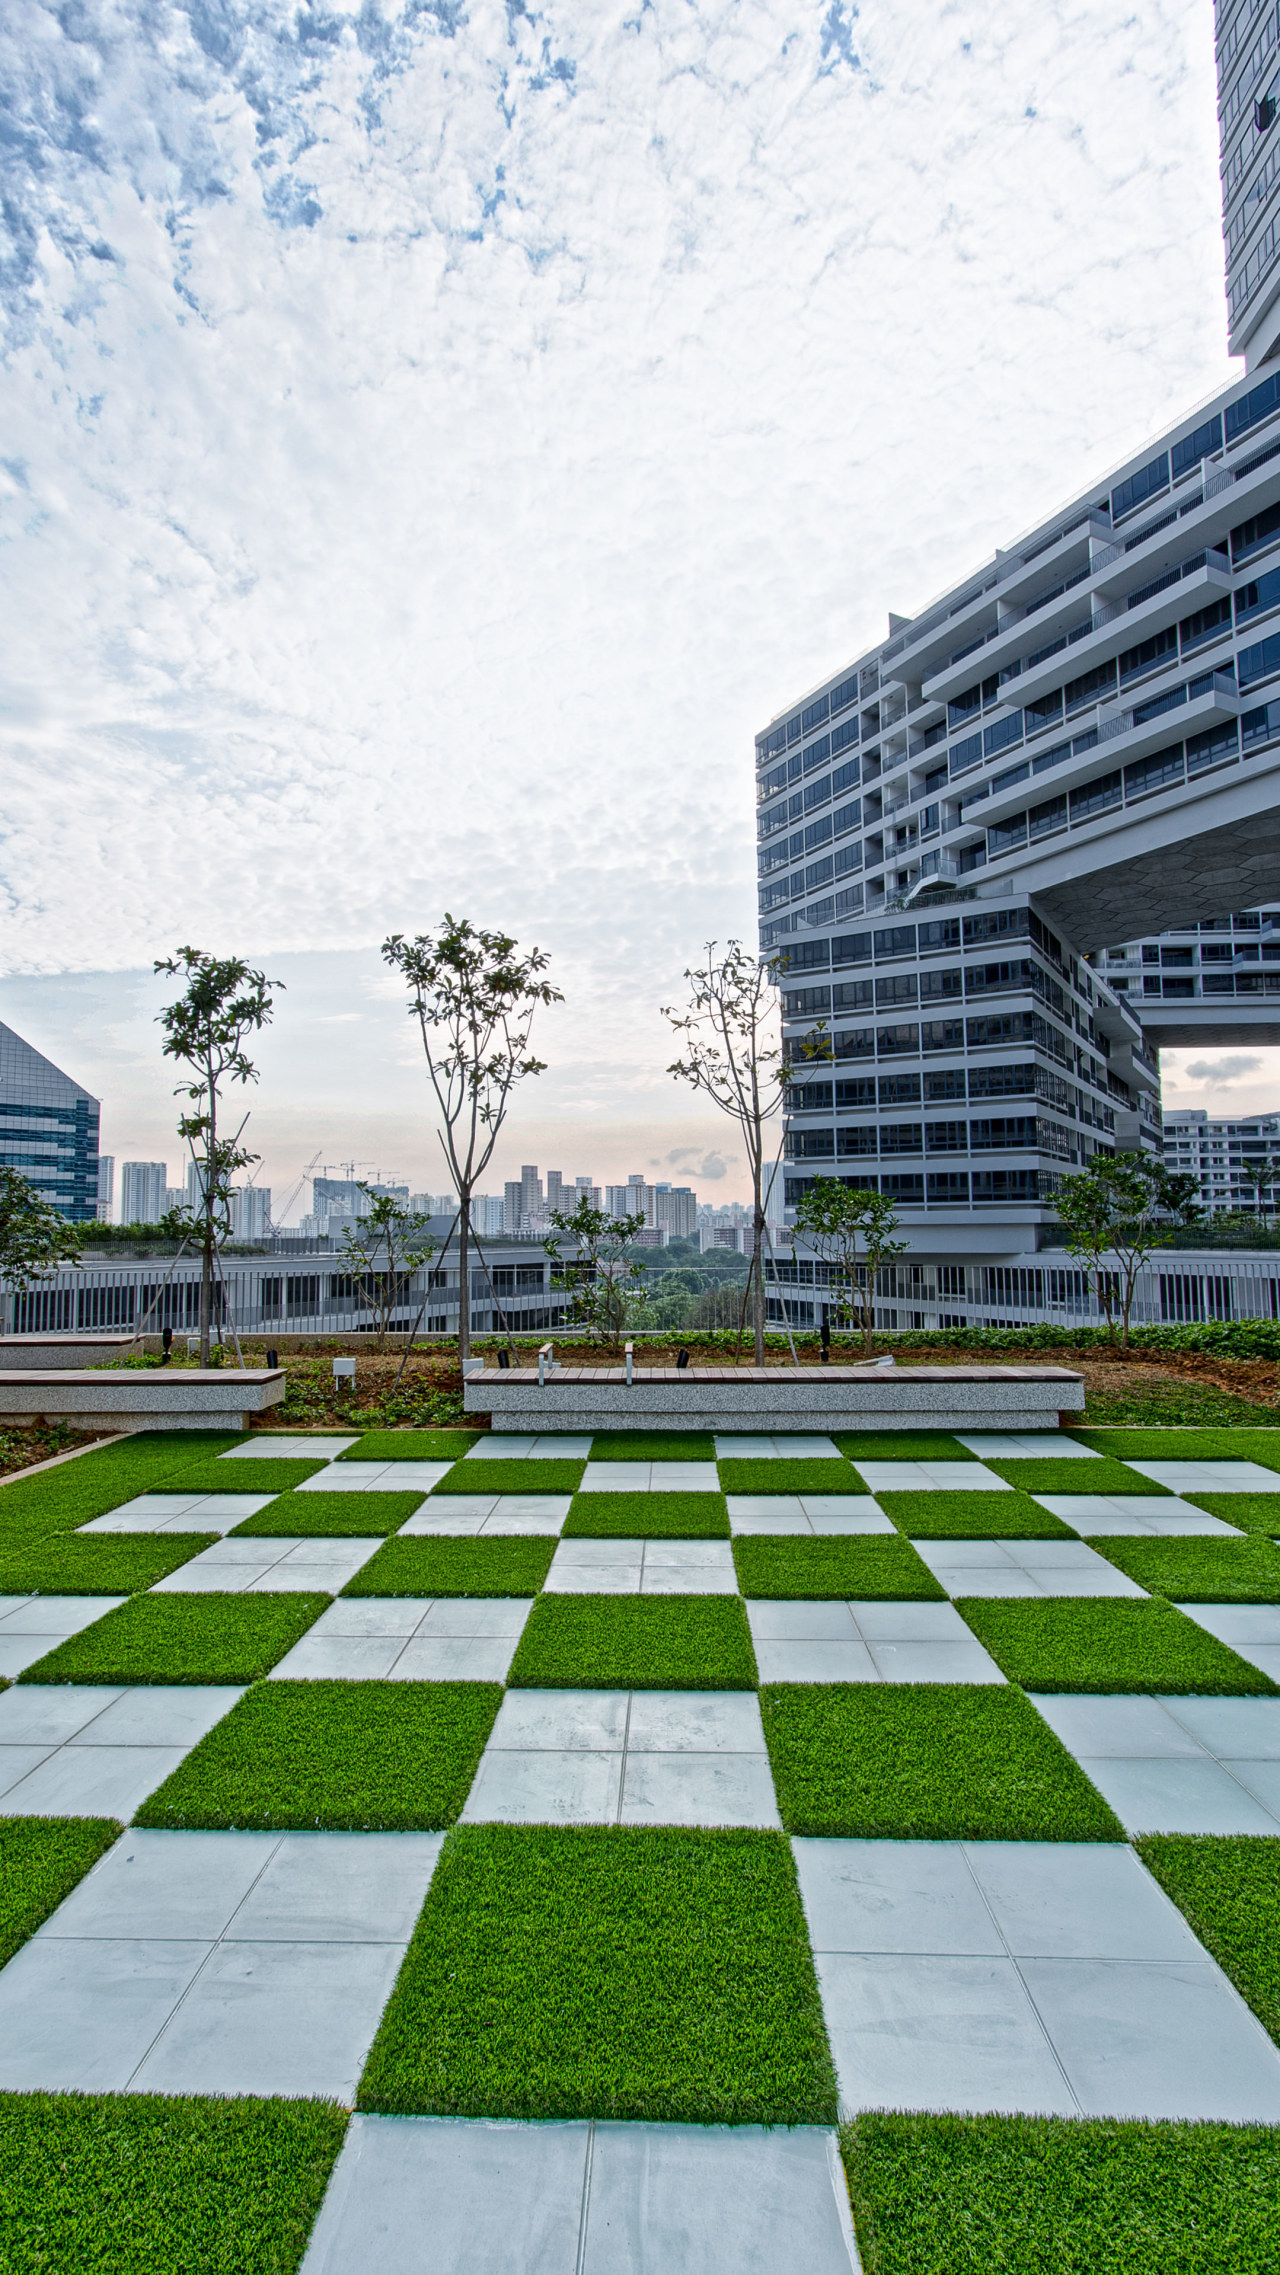 Landscaped public areas at The Interlace apartments, Singapore architecture, building, campus, condominium, corporate headquarters, daytime, grass, headquarters, landmark, landscape, landscaping, lawn, line, metropolitan area, plant, real estate, residential area, sky, structure, urban area, urban design, walkway, gray, white